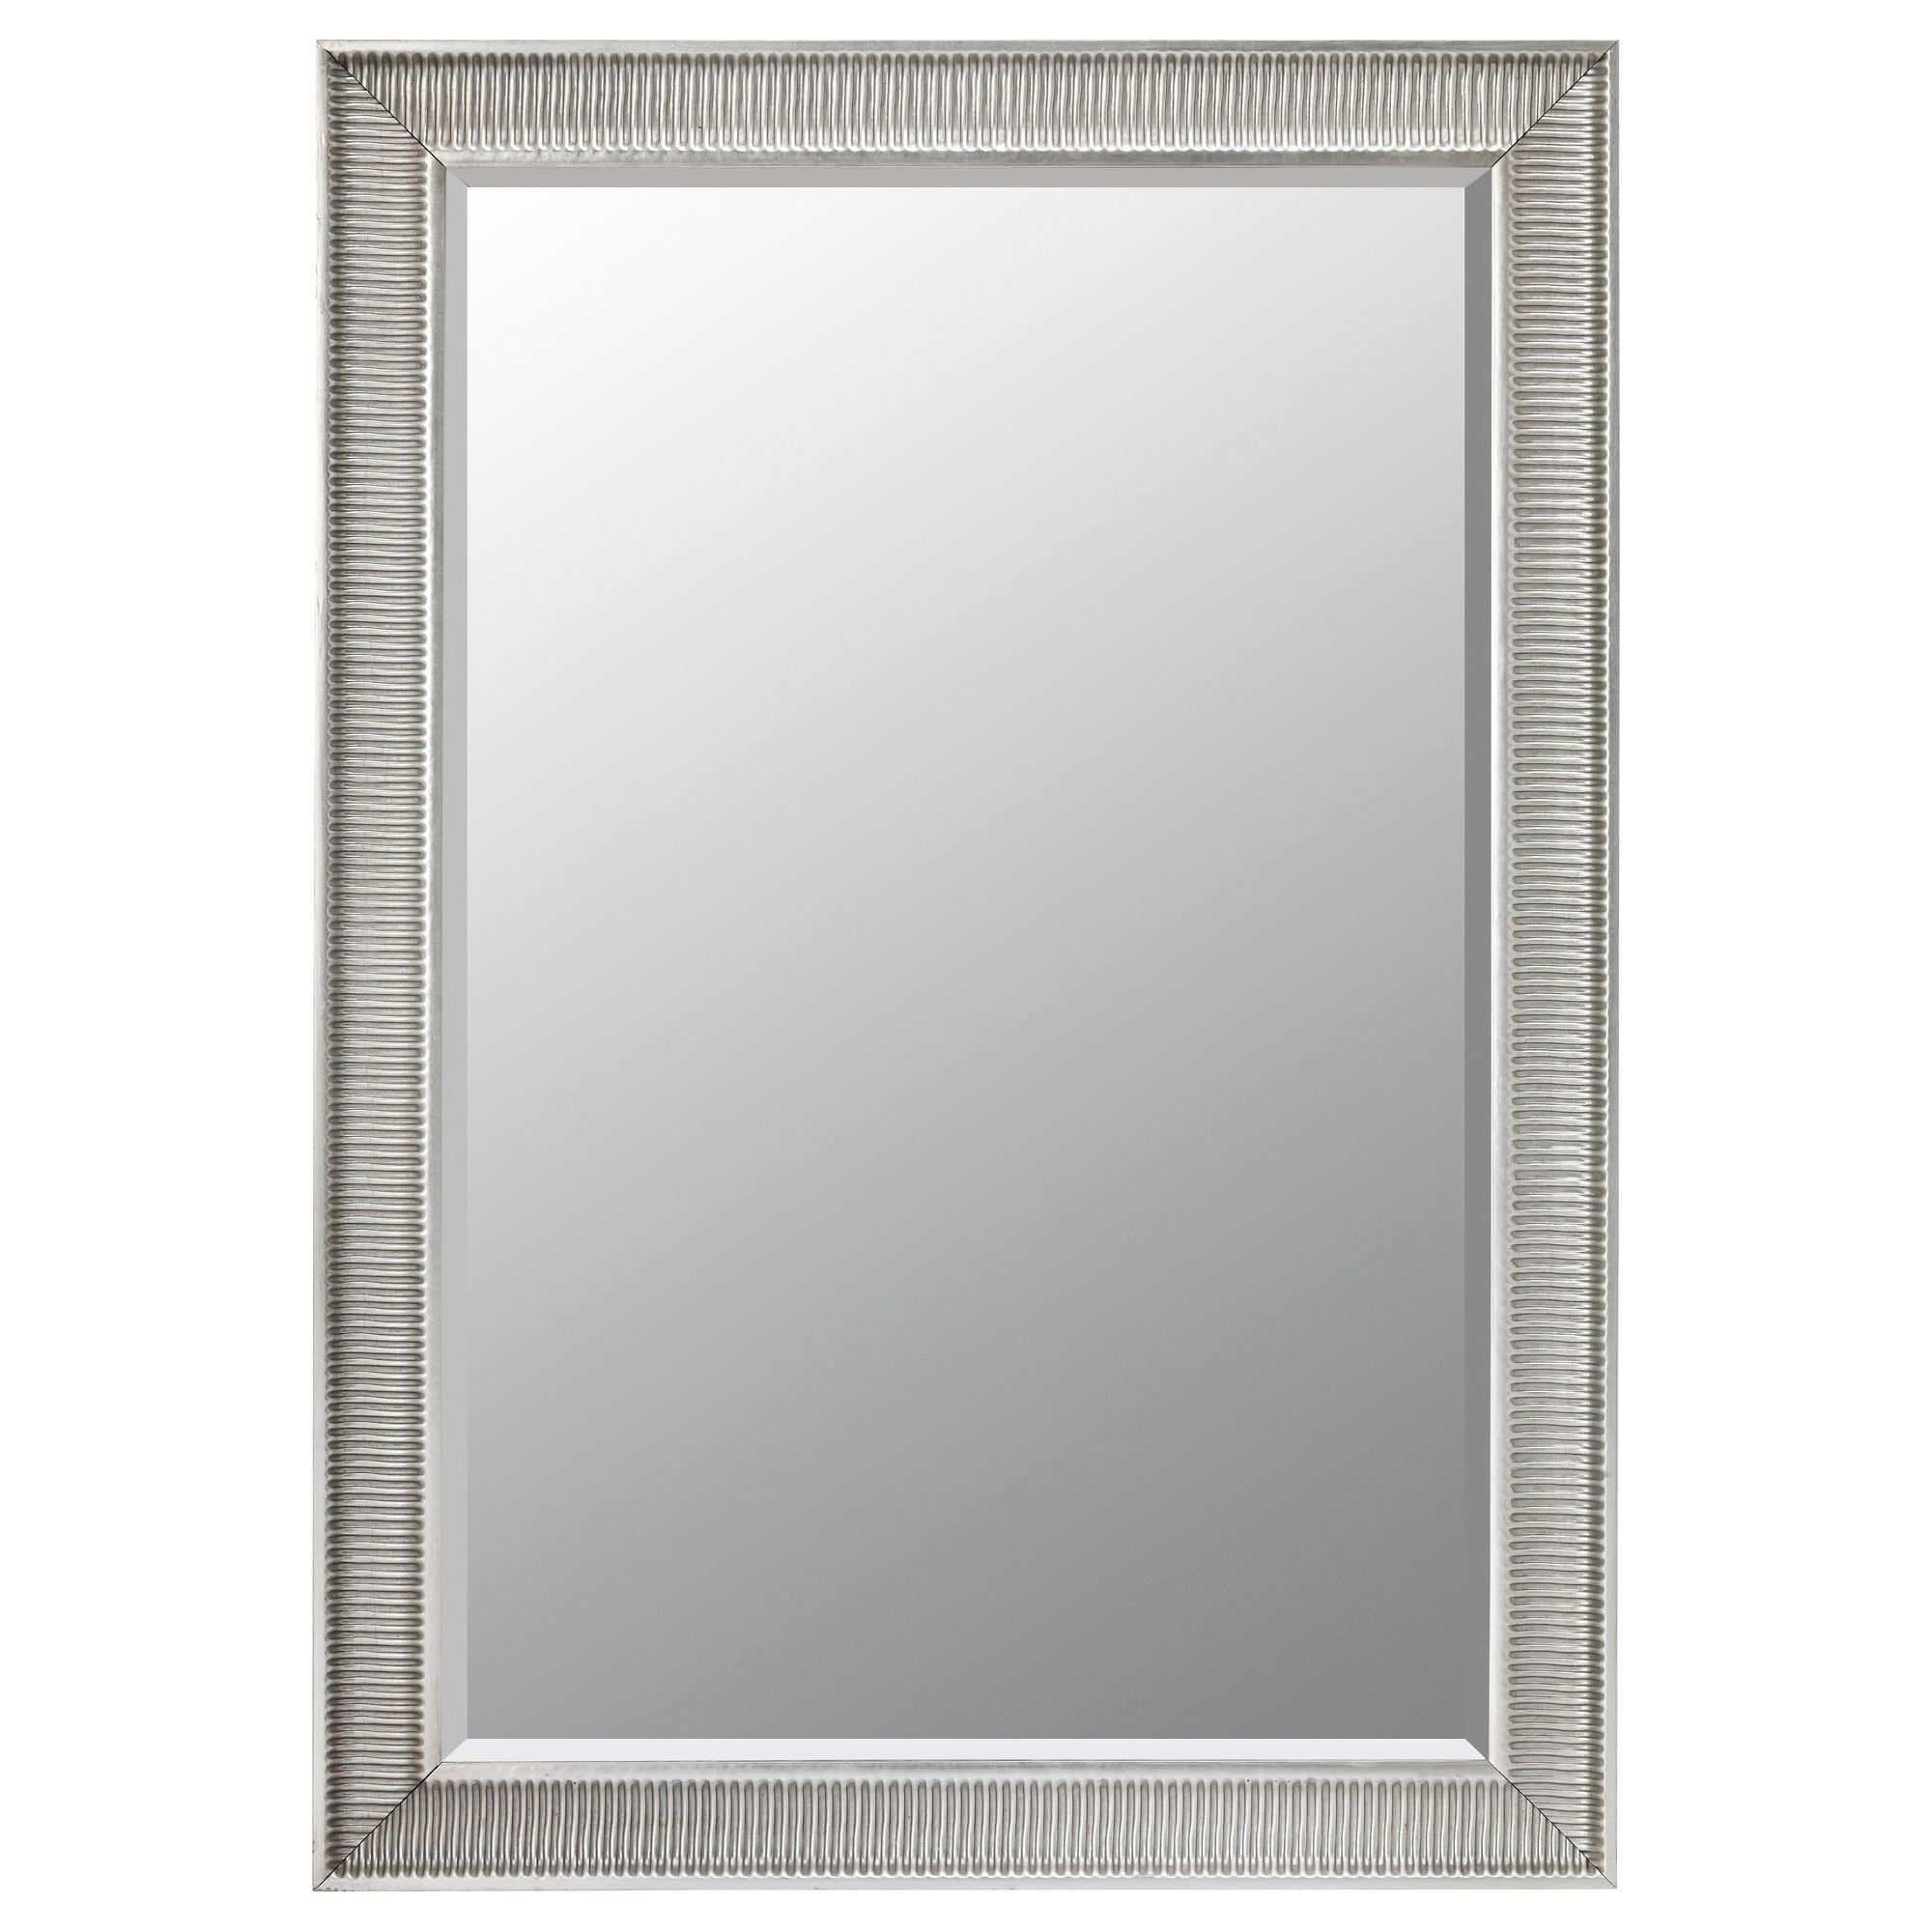 Spiegel Songe Songe Mirror Silver Color House Ikea Mirror Ikea Bedroom Mirror